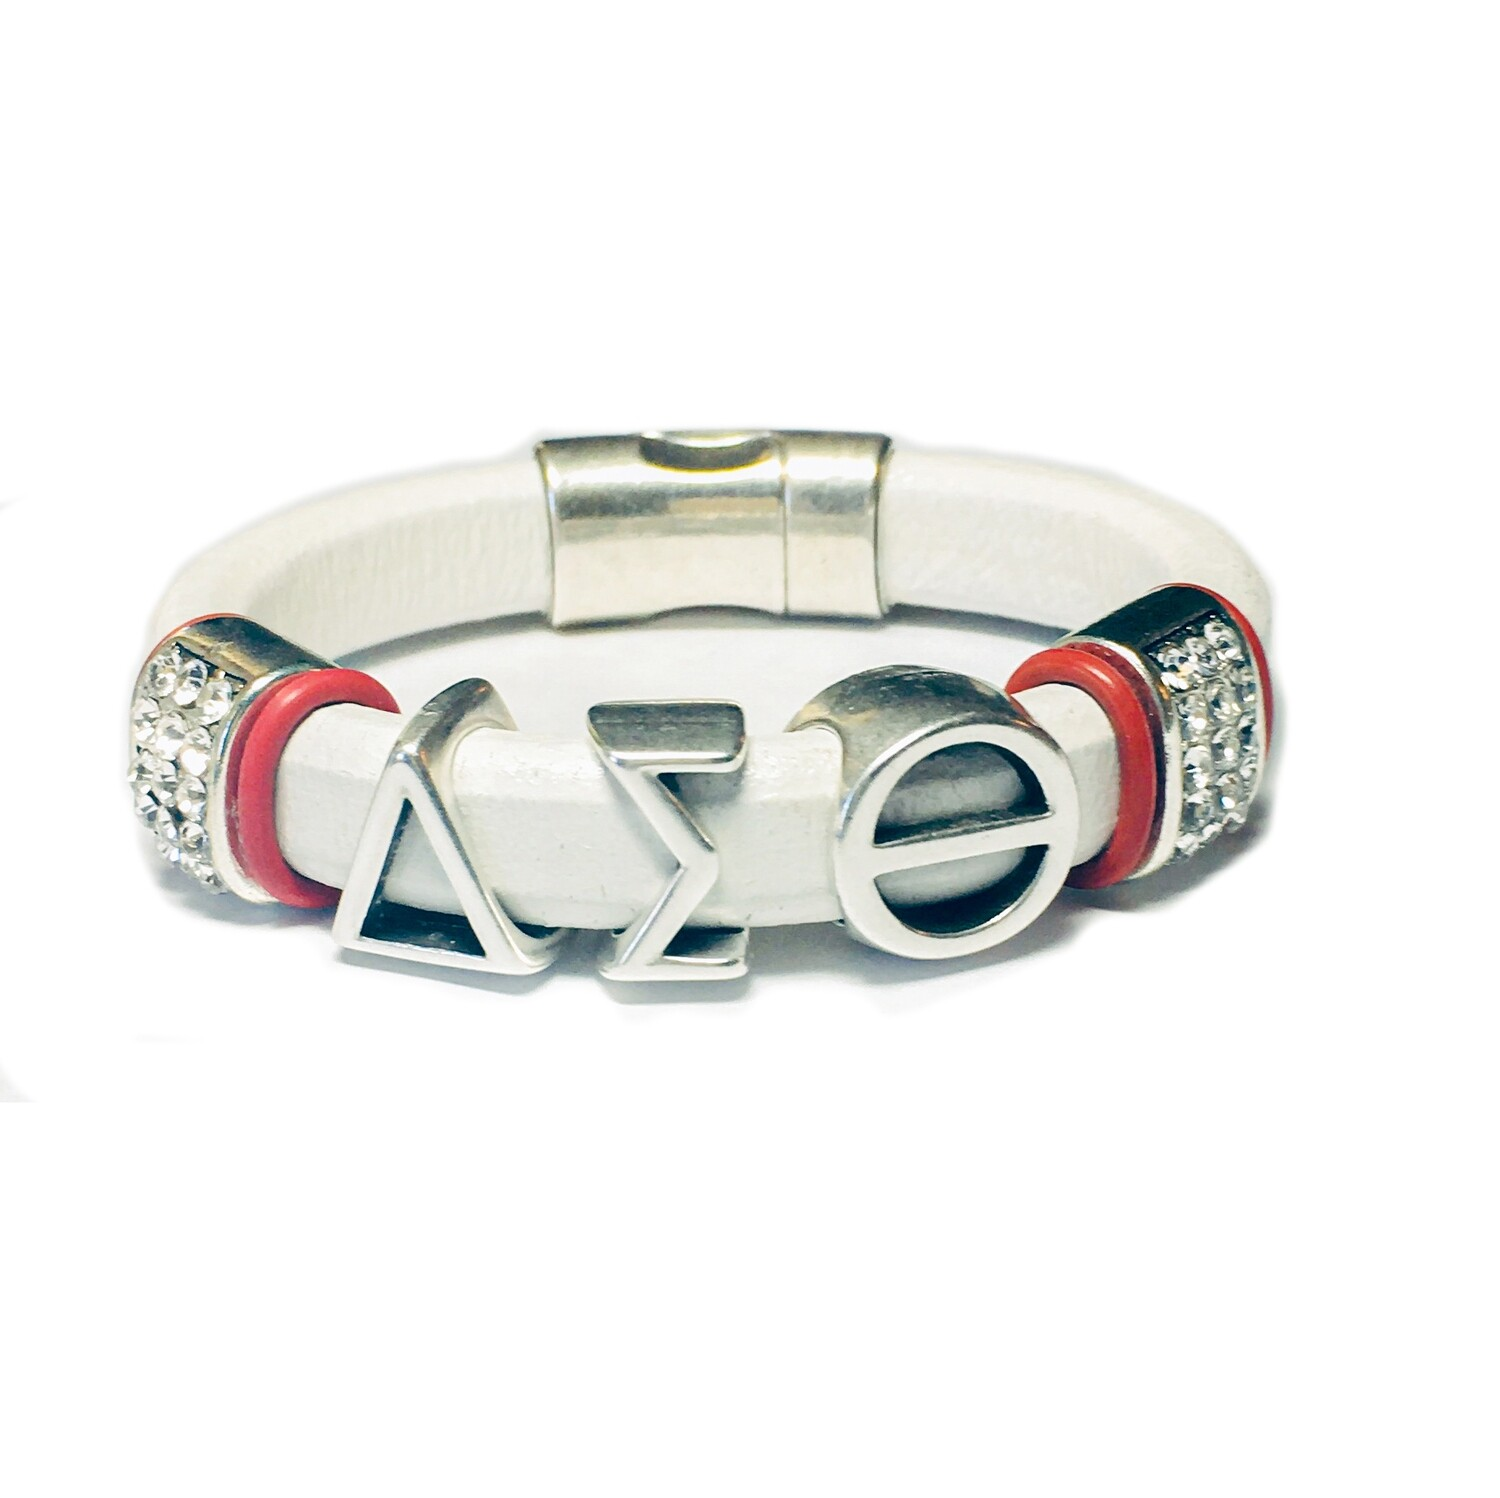 Bracelet | White Leather Delta Sigma Theta With Bling Classy Creations Originals